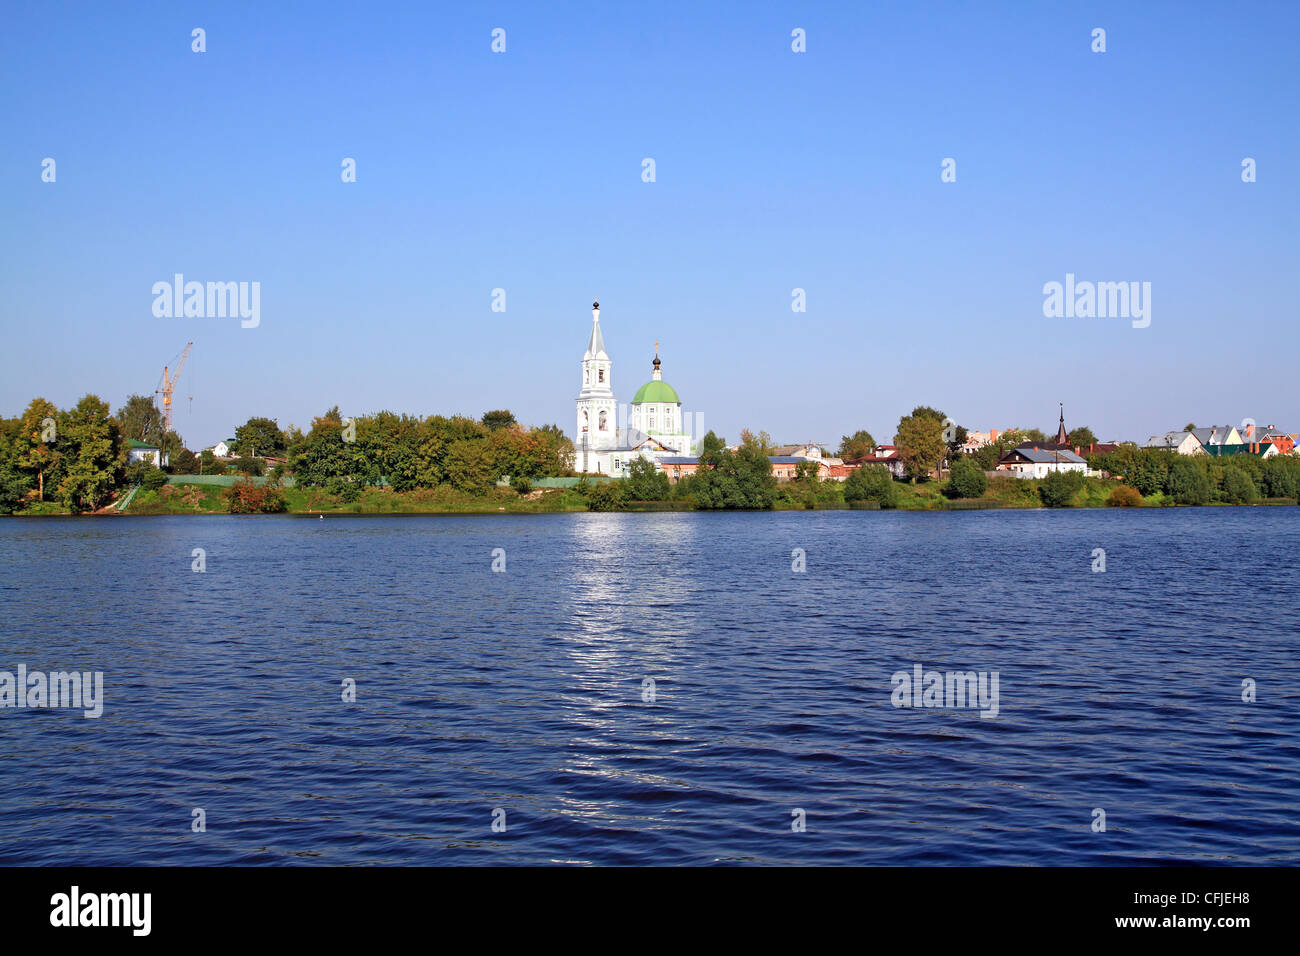 christian orthodox church on coast river - Stock Image